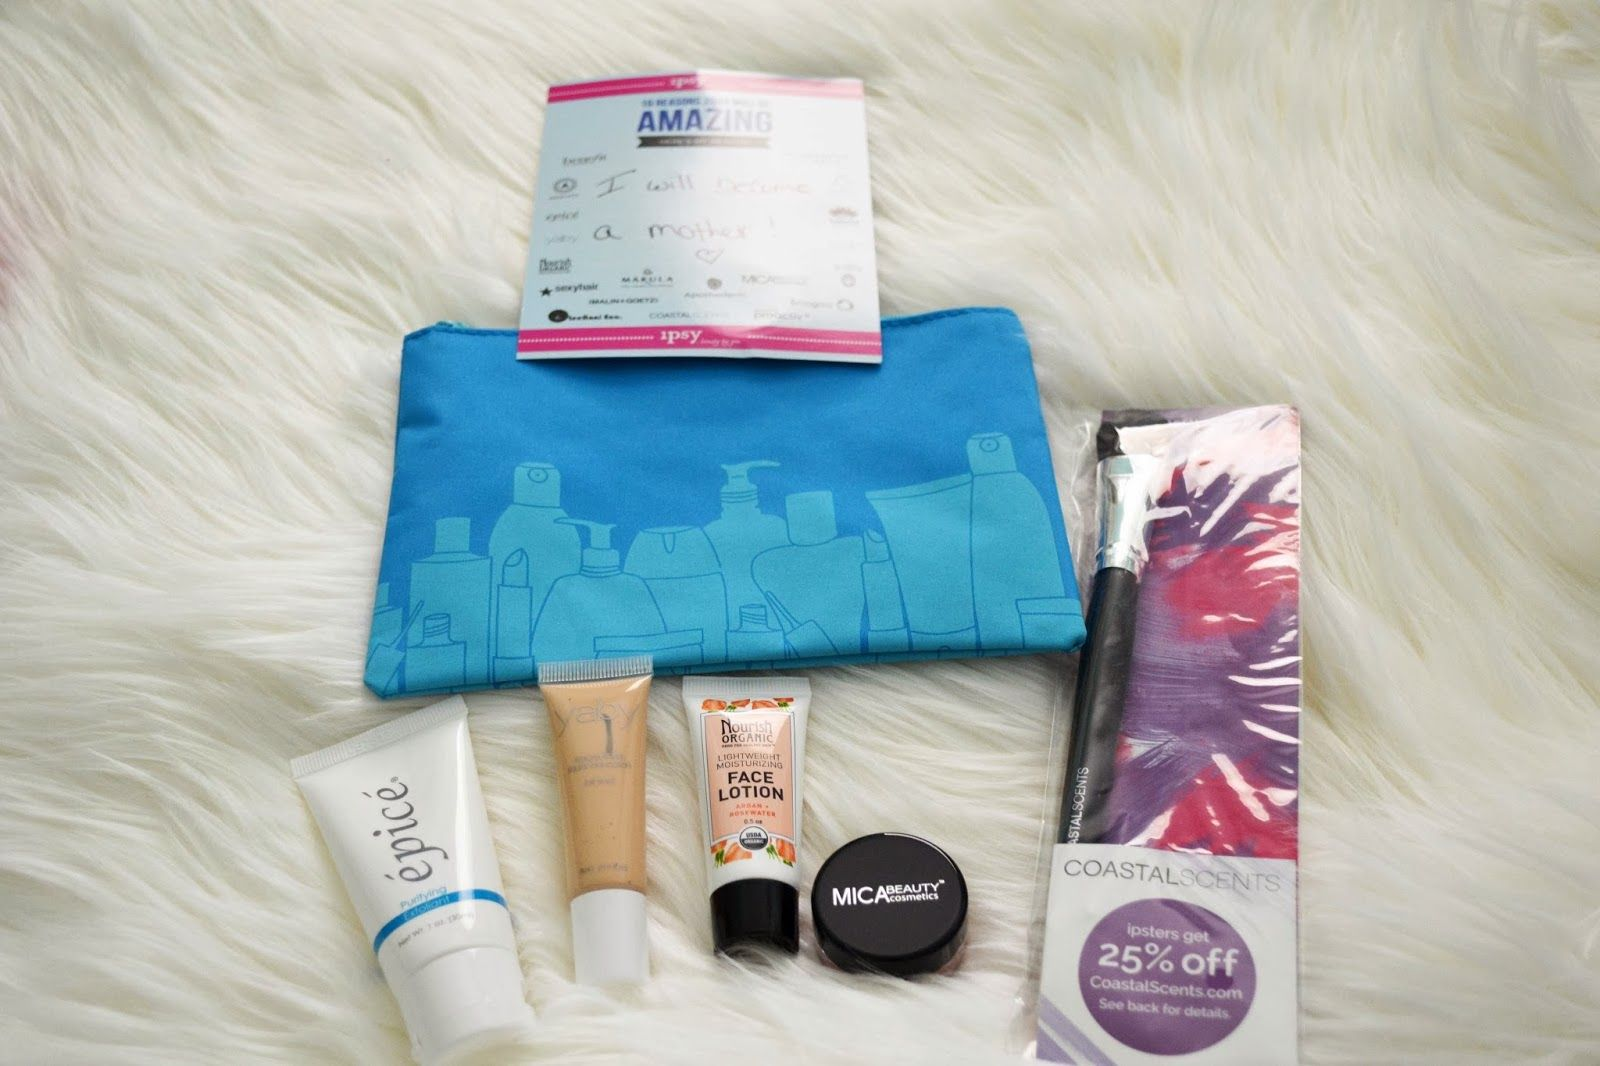 #Ipsy Glam Bag Review, January 2014